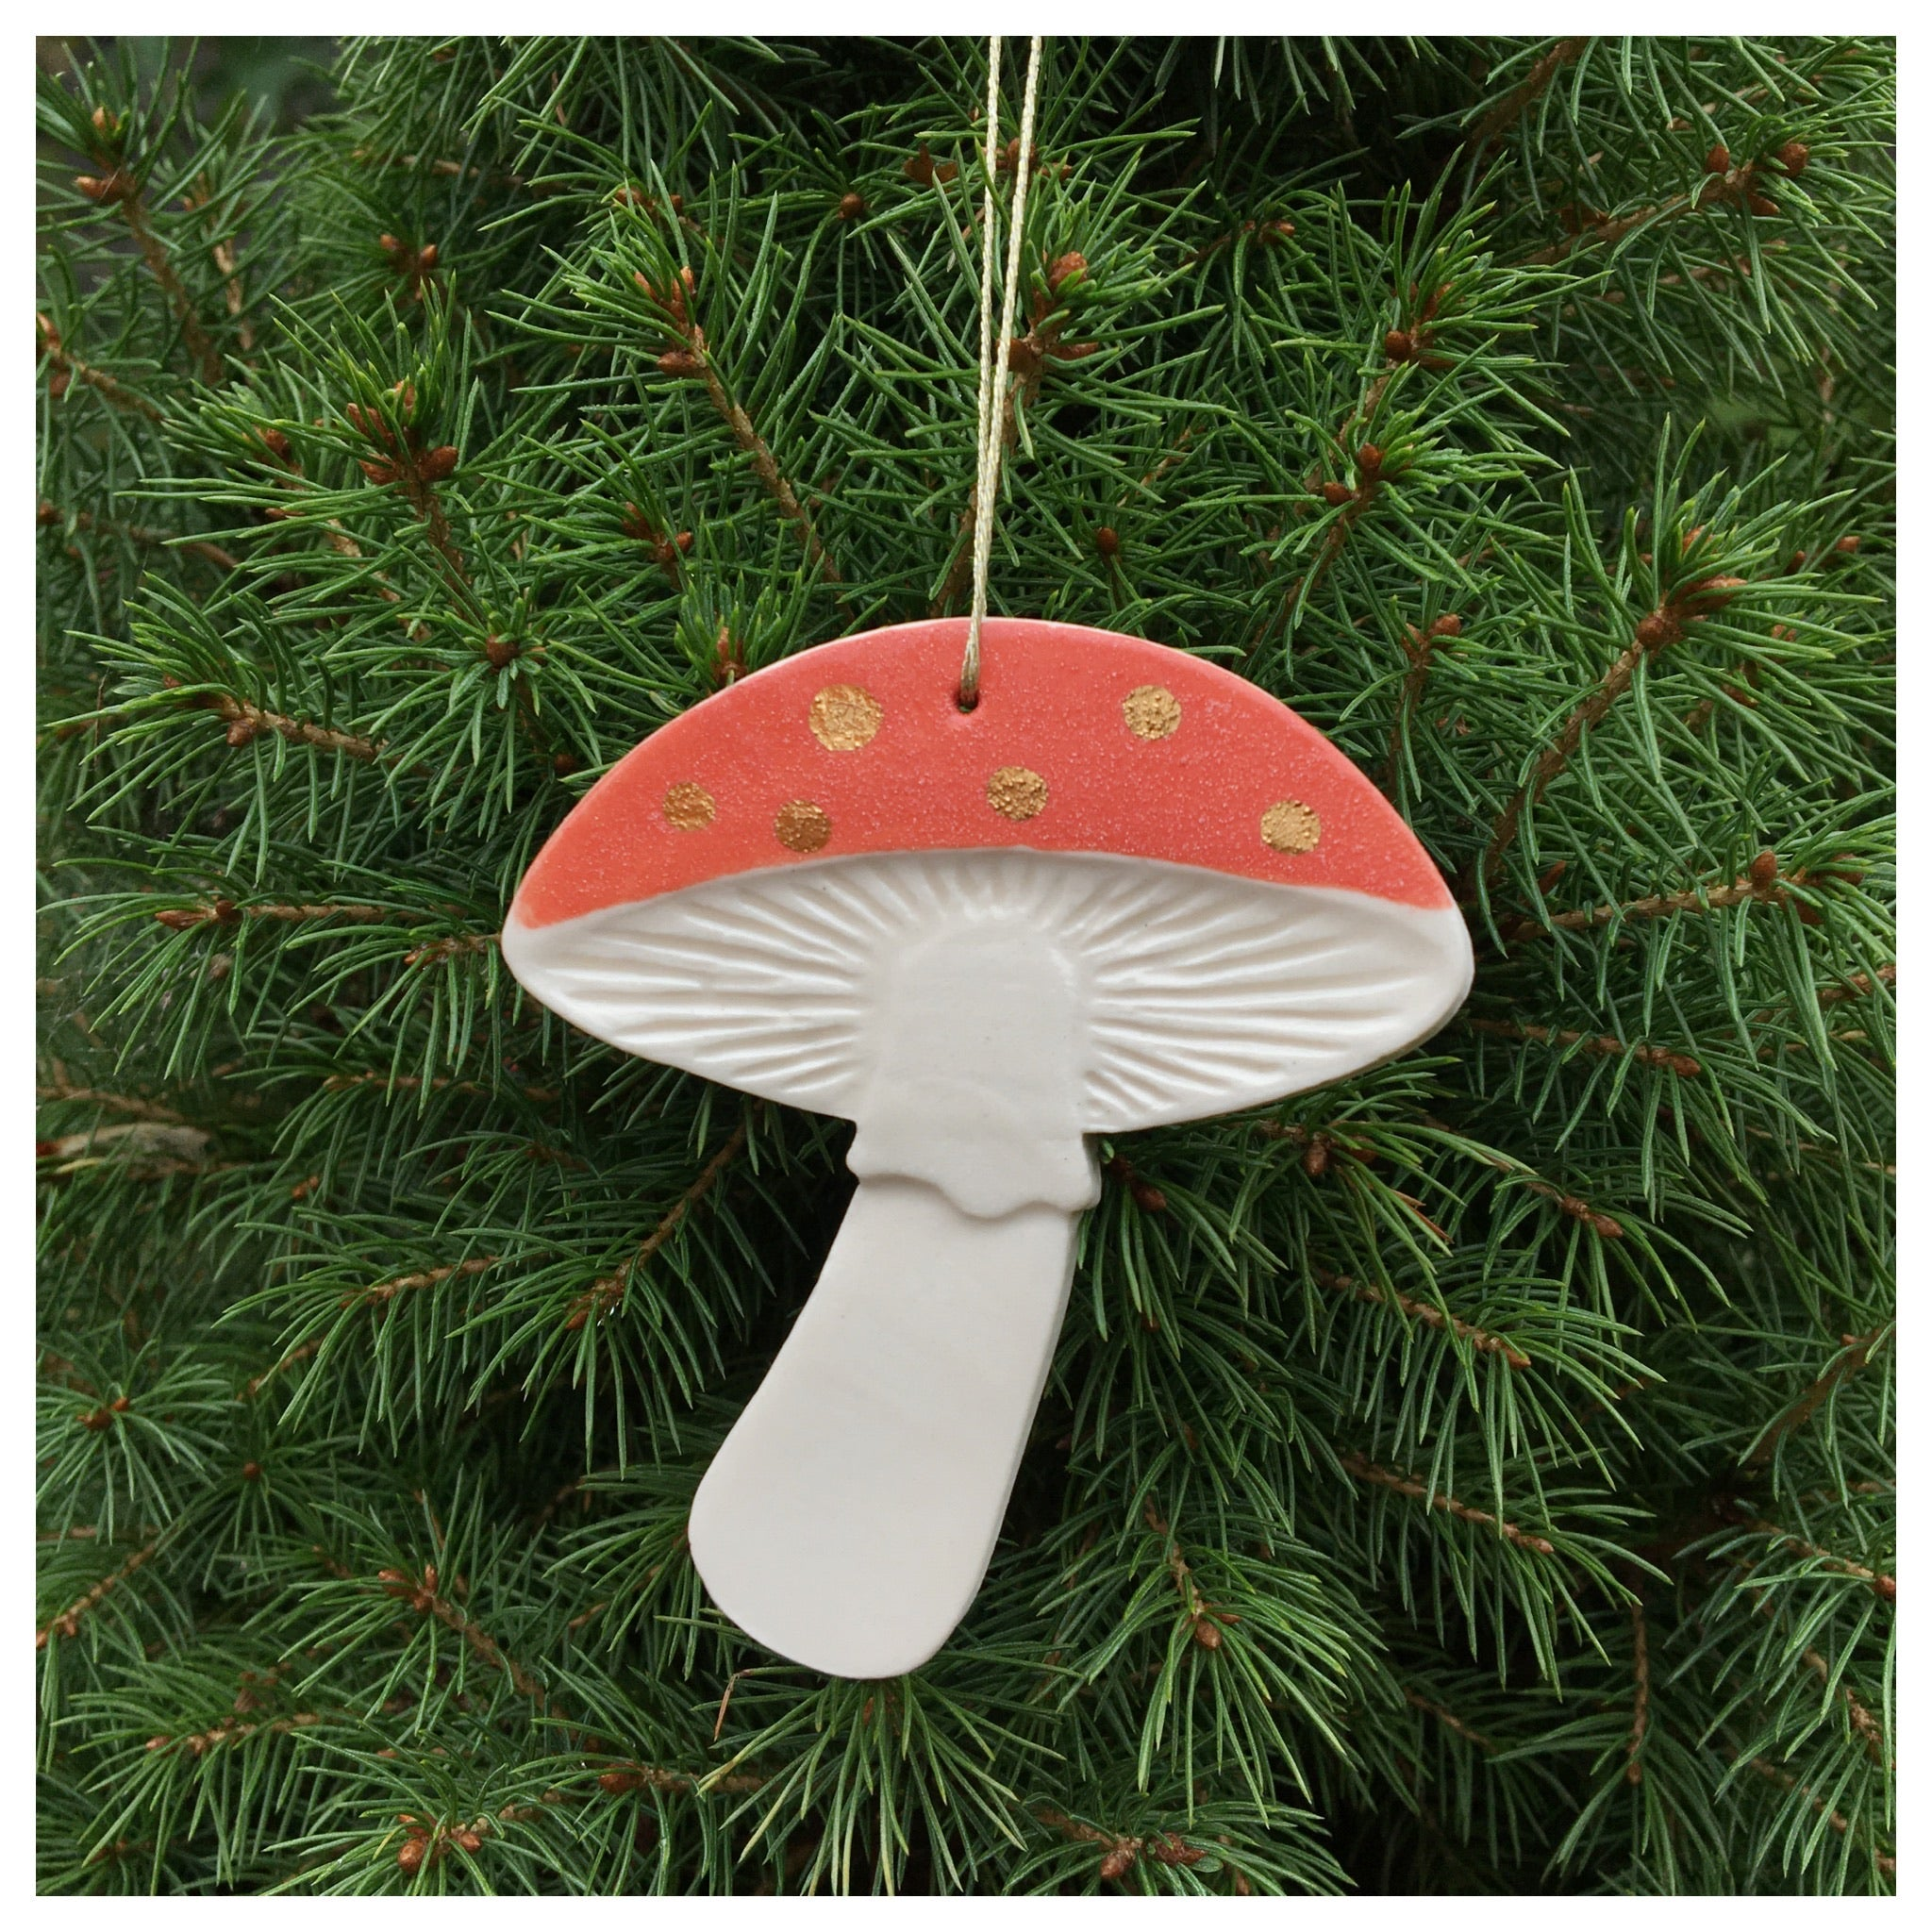 Handmade ceramic mushroom ornament- gold dots